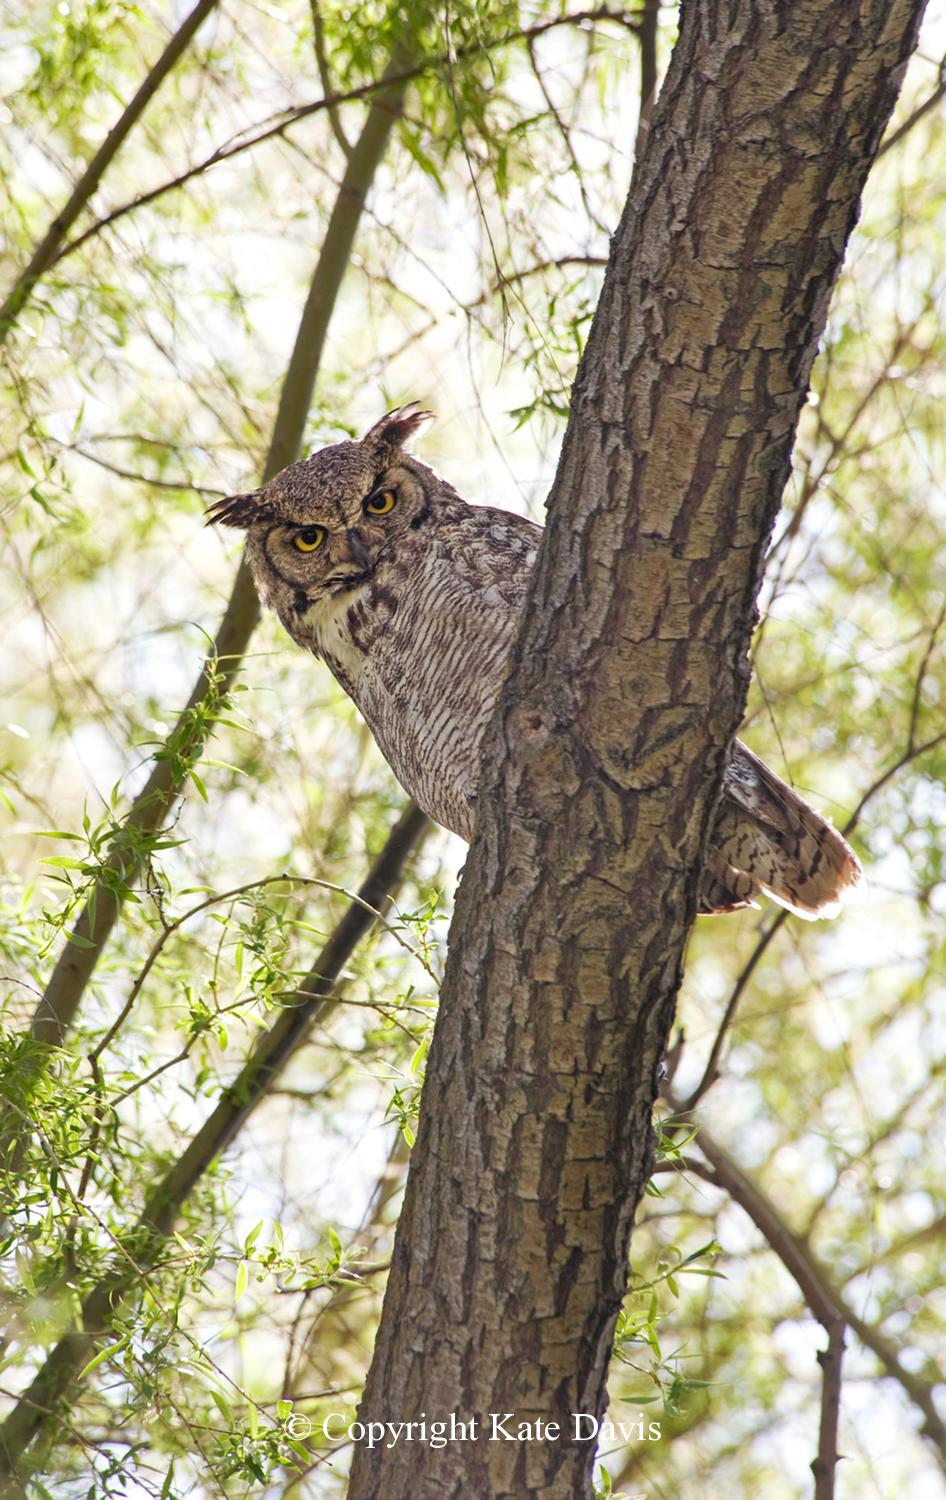 Kate Davis Owl Photographs  - Male Great Horned - Owl Photography - Male Great Horned Owl thinks he knows everything